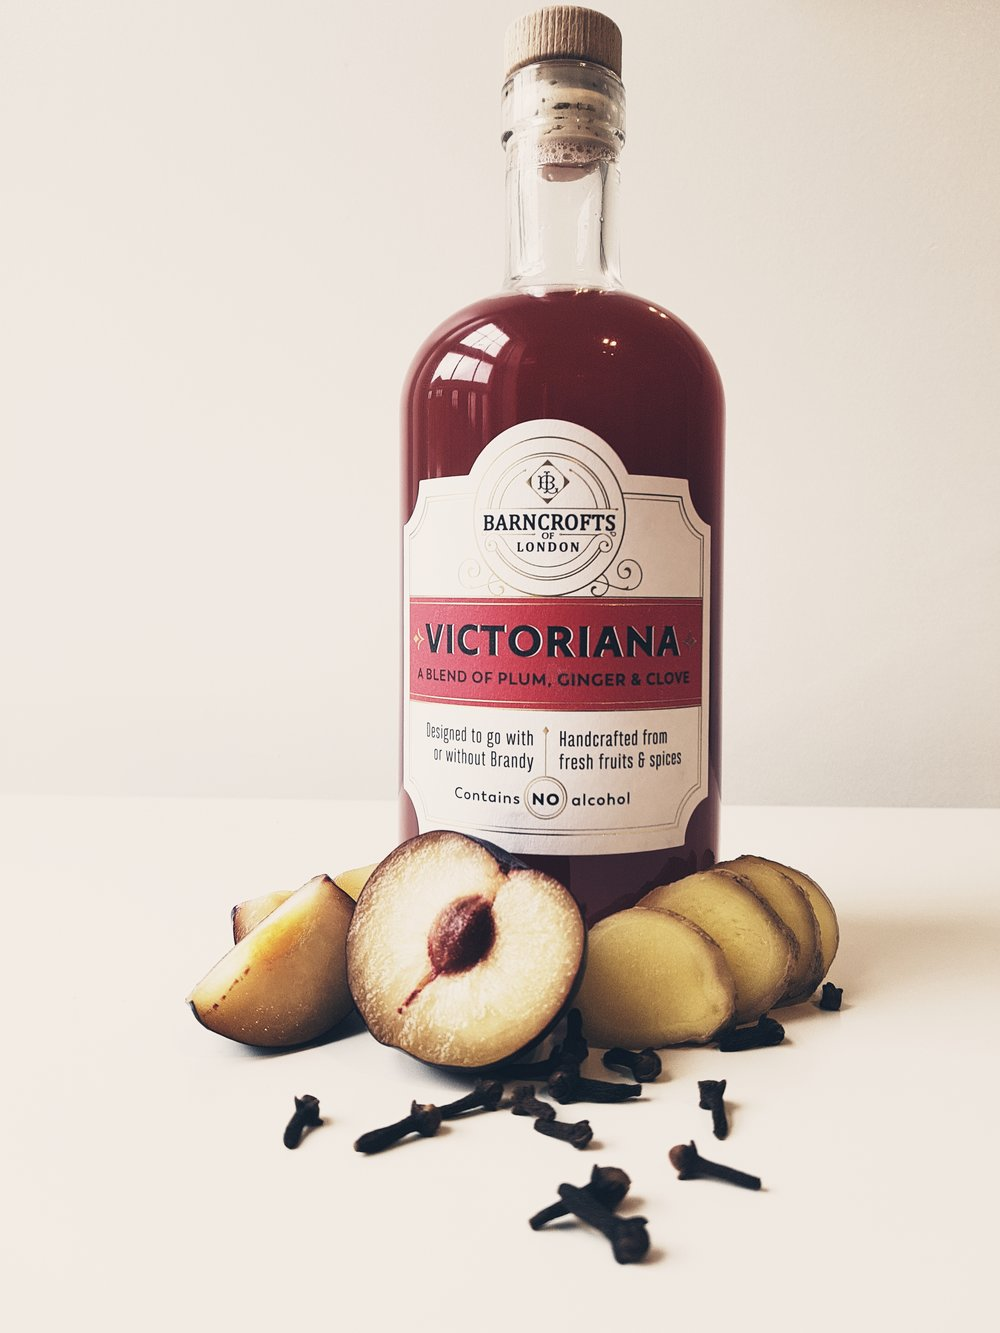 we are excited to announce that - our autumn/winter blend of plum, ginger & clove is here!!